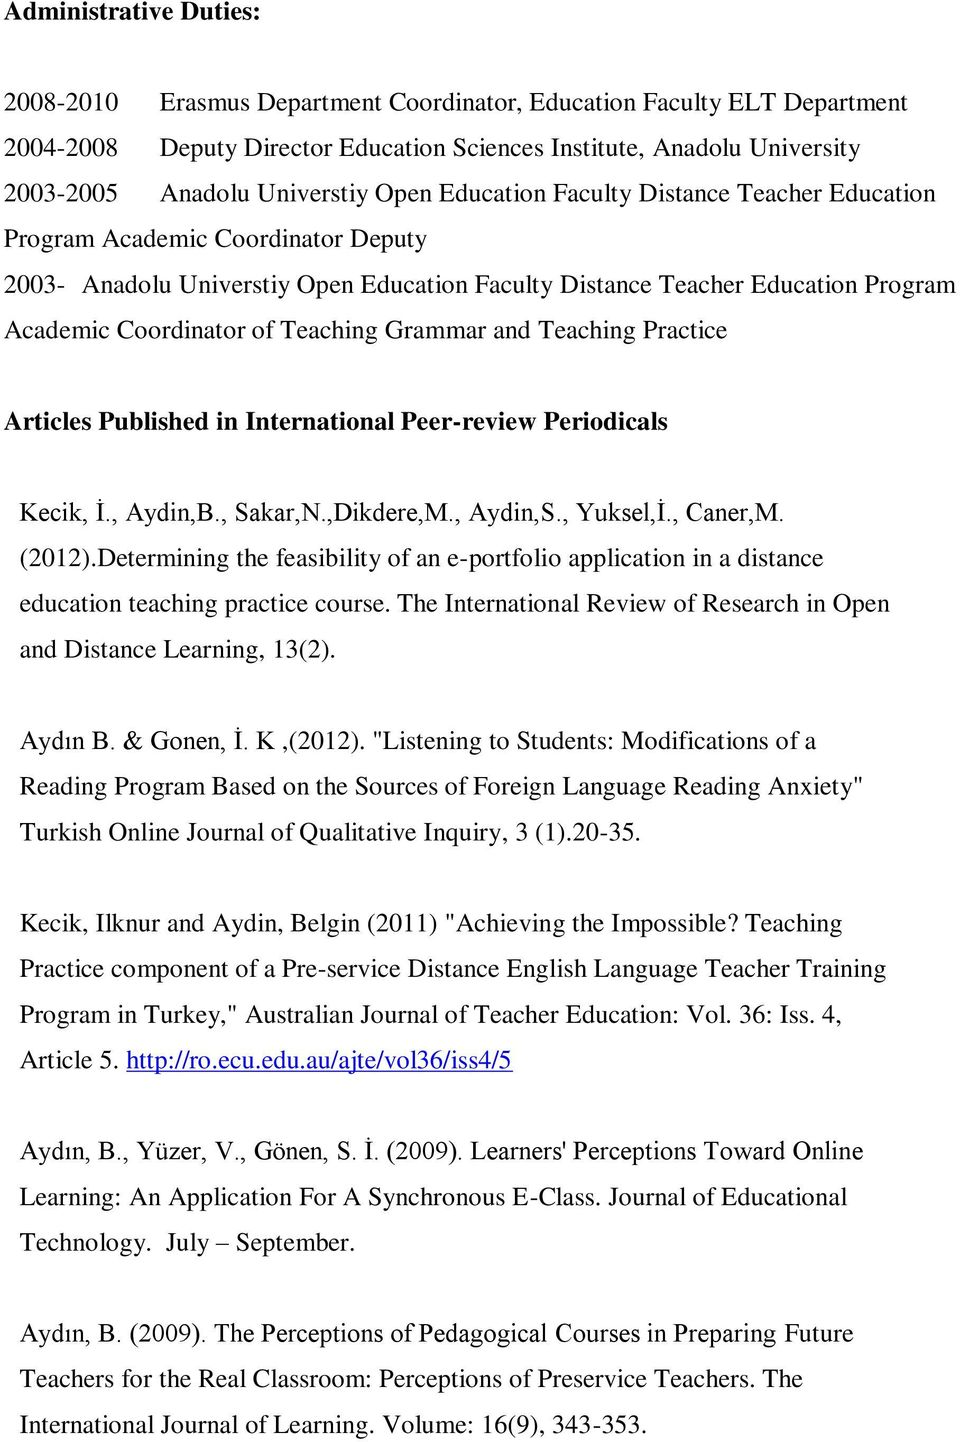 Coordinator of Teaching Grammar and Teaching Practice Articles Published in International Peer-review Periodicals 1. Kecik, İ., Aydin,B., Sakar,N.,Dikdere,M., Aydin,S., Yuksel,İ., Caner,M. (2012).